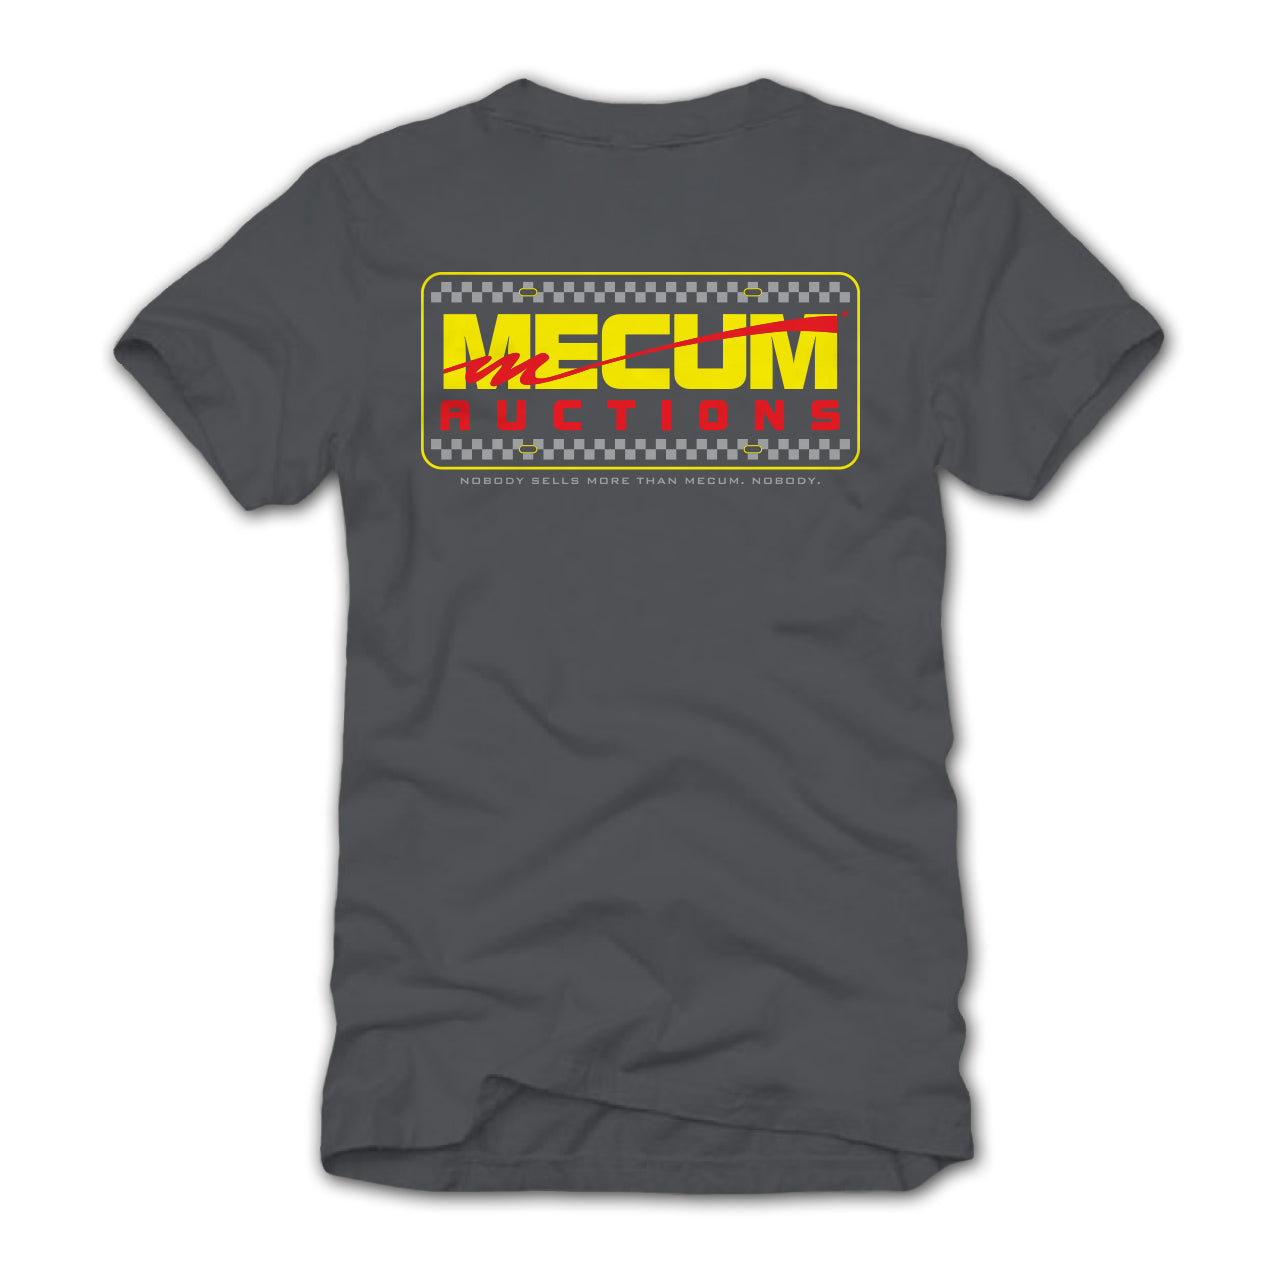 Photo of 2020 Mecum Men's Fresh Logo T-Shirt back